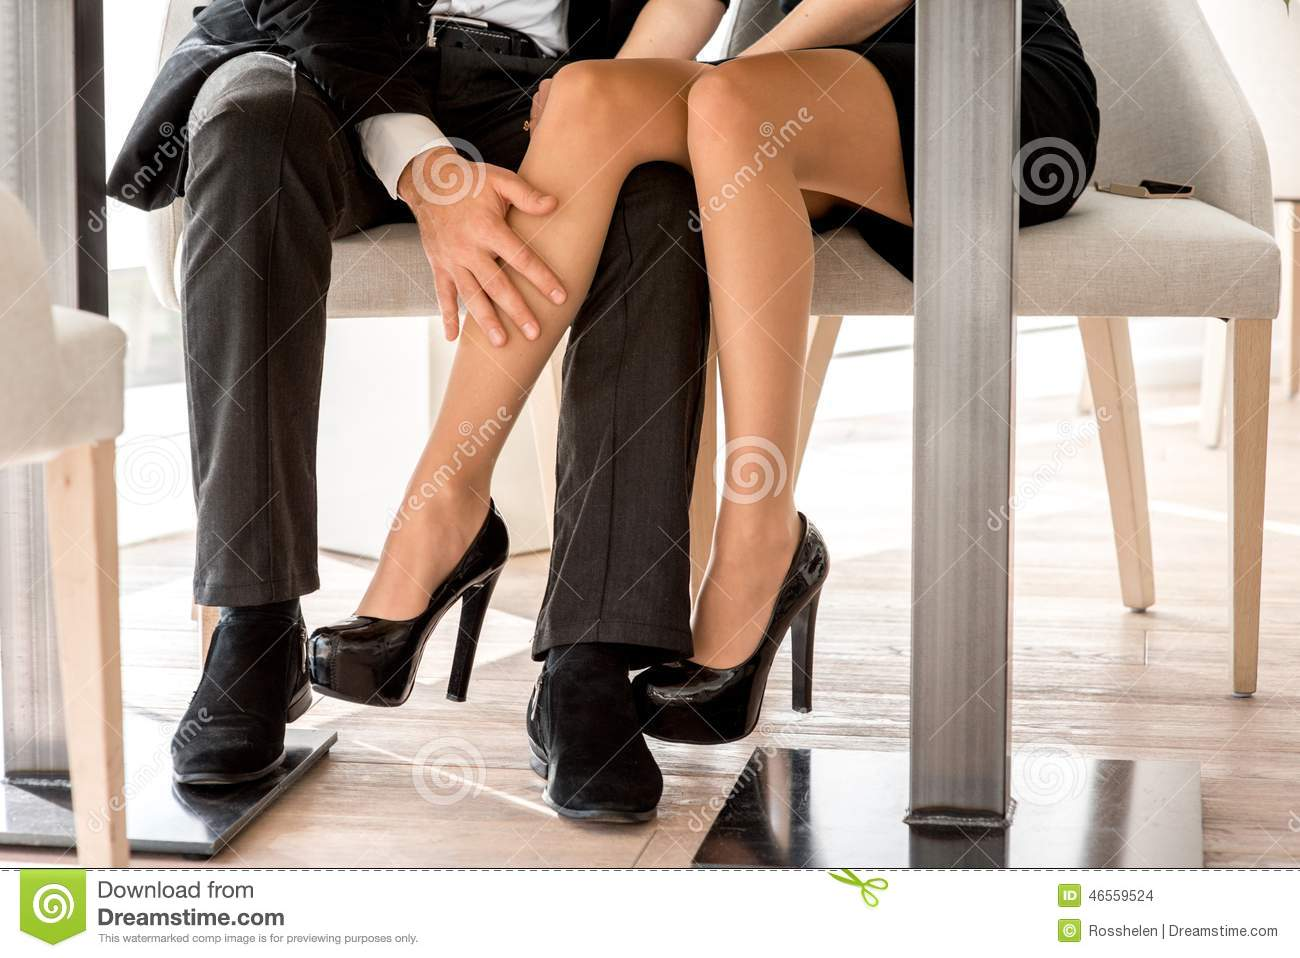 Legs Under Table : Young couple flirting with legs at the restaurant under the table.